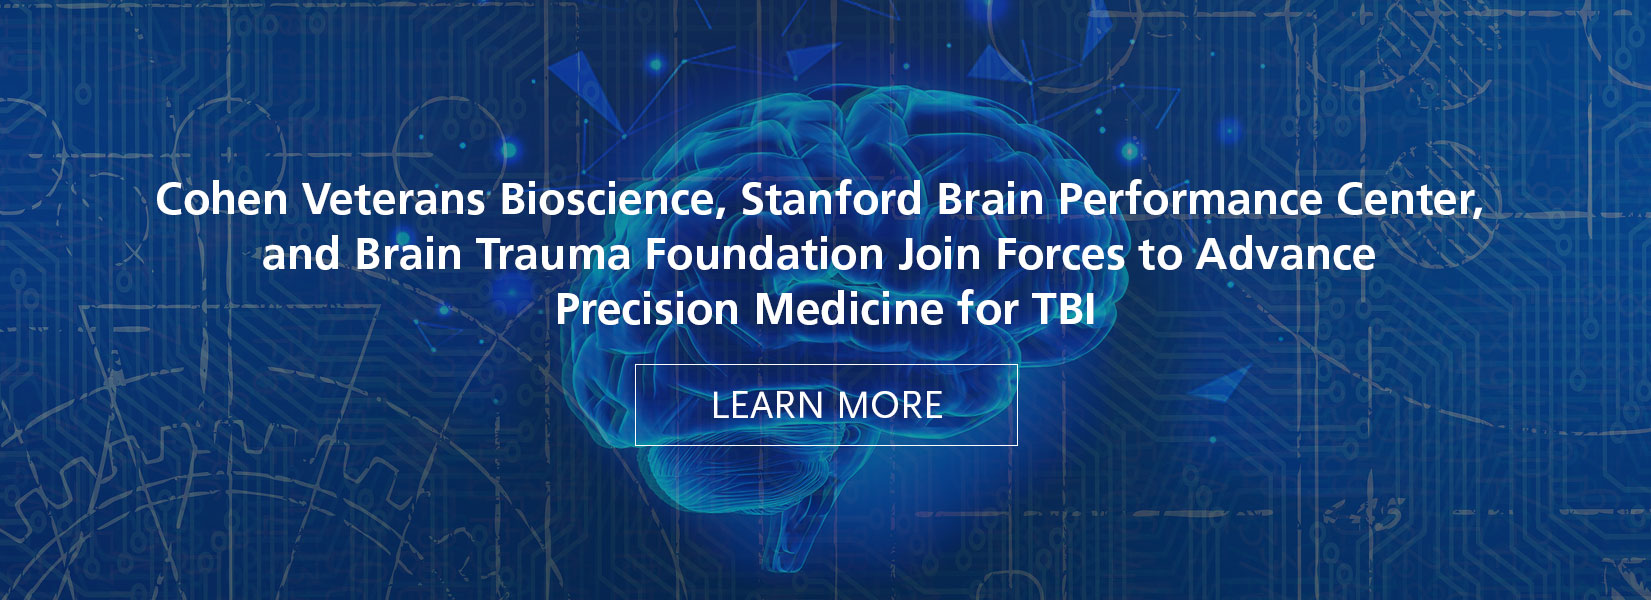 Cohen Veterans Bioscience, Stanford Brain Performance Center, and Brain Trauma Foundation Join Forces to Advance Precision Medicine for TBI